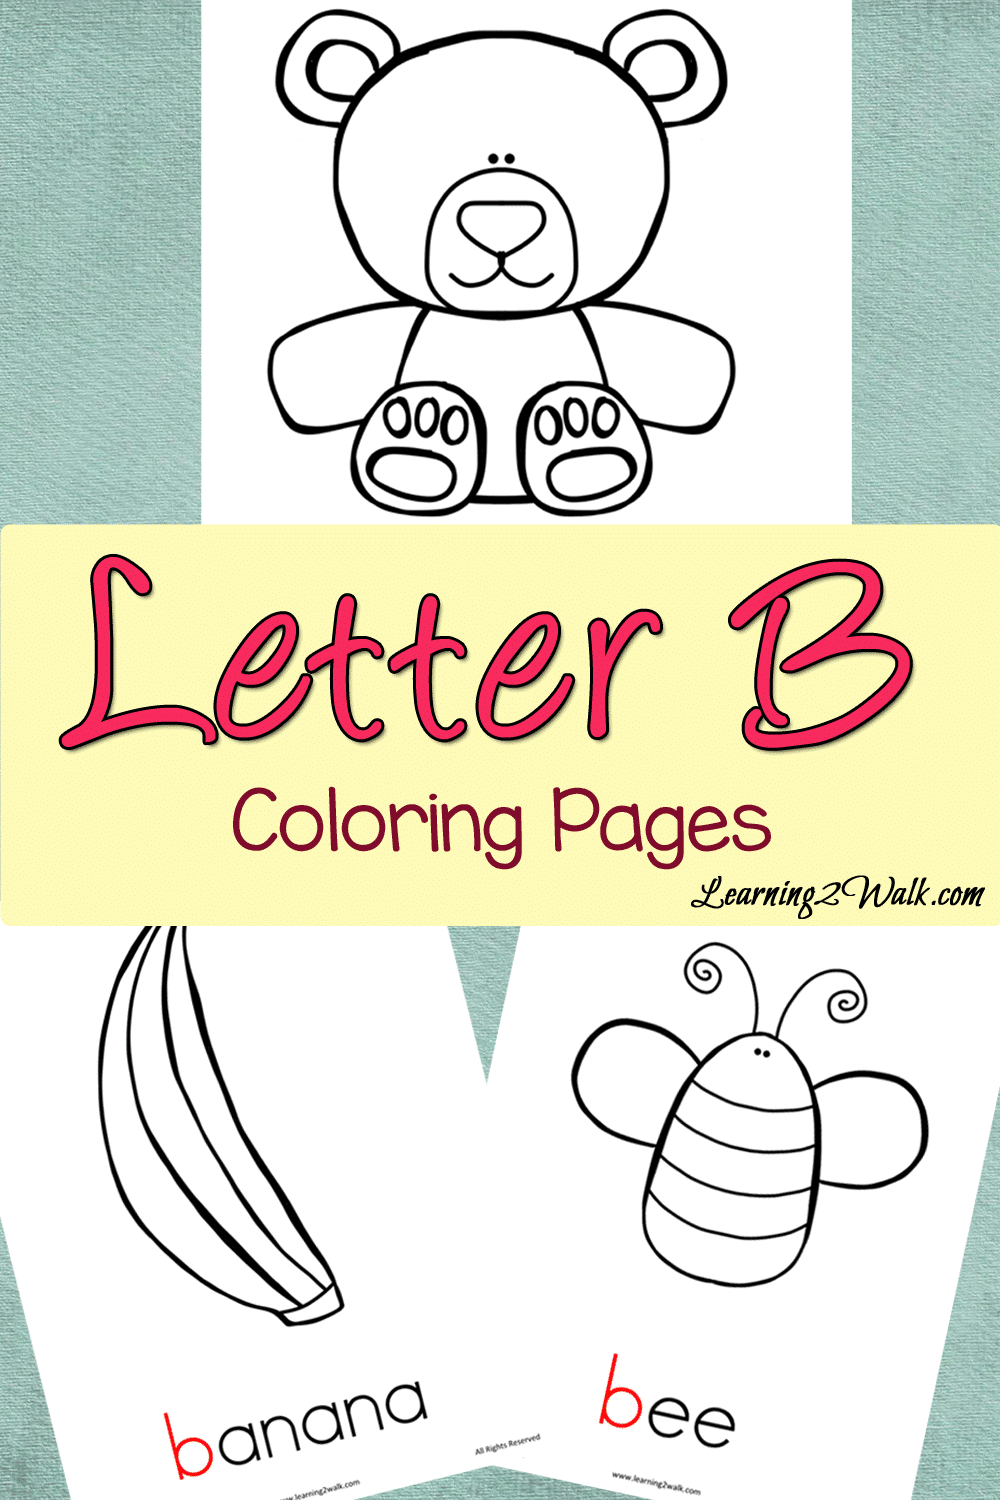 Preschool Letter Activities Letter C Coloring Pages